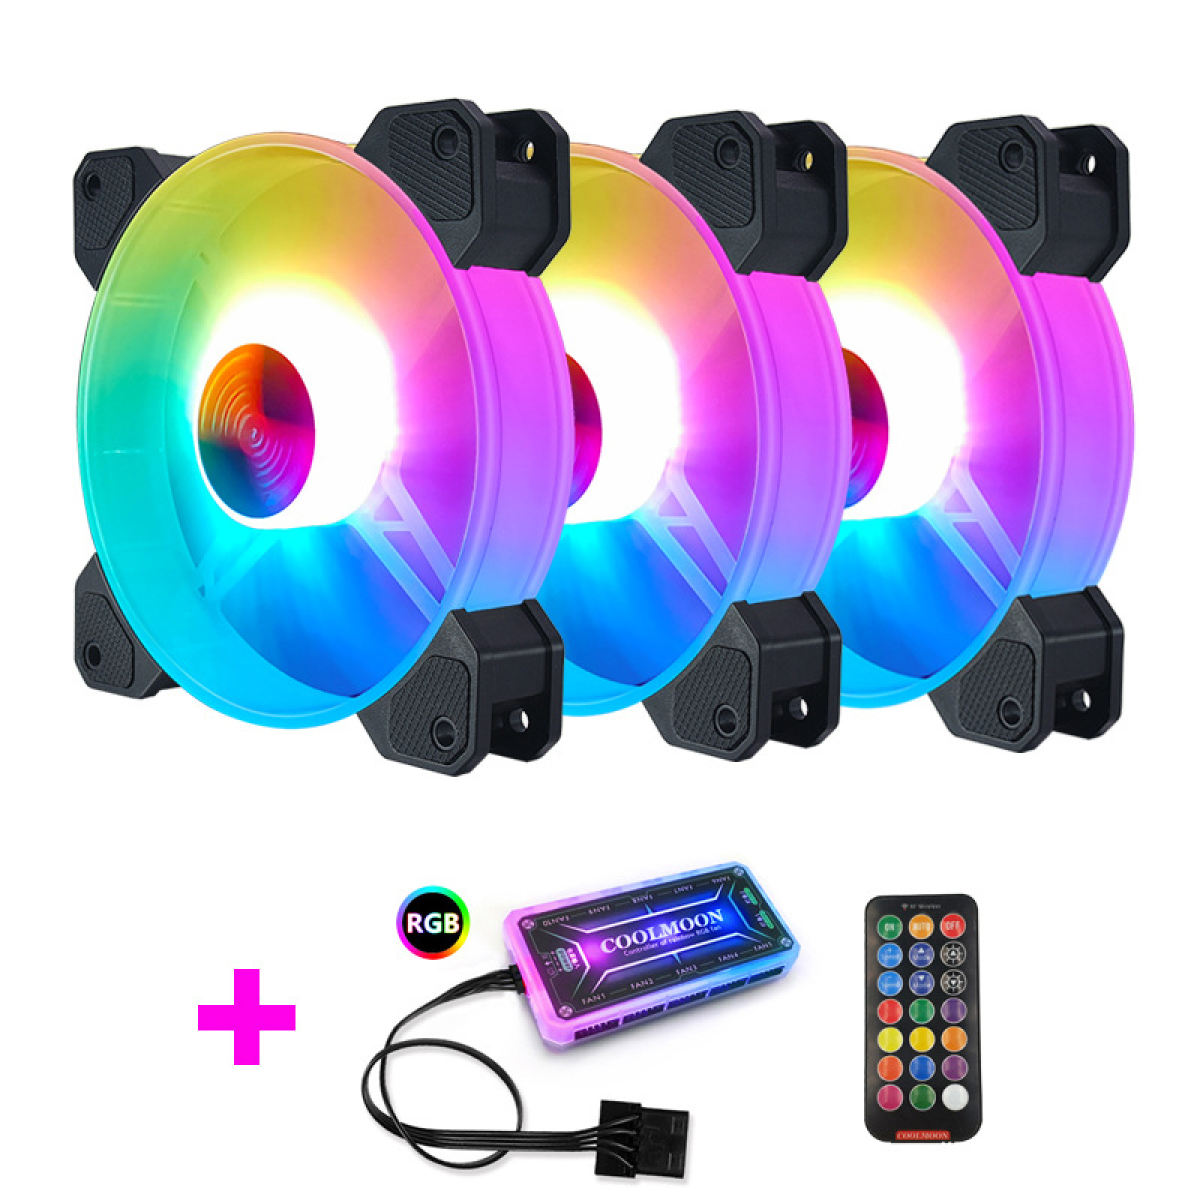 COOLMOON 3x RGB Fan with Controller & Remote (Set 1)